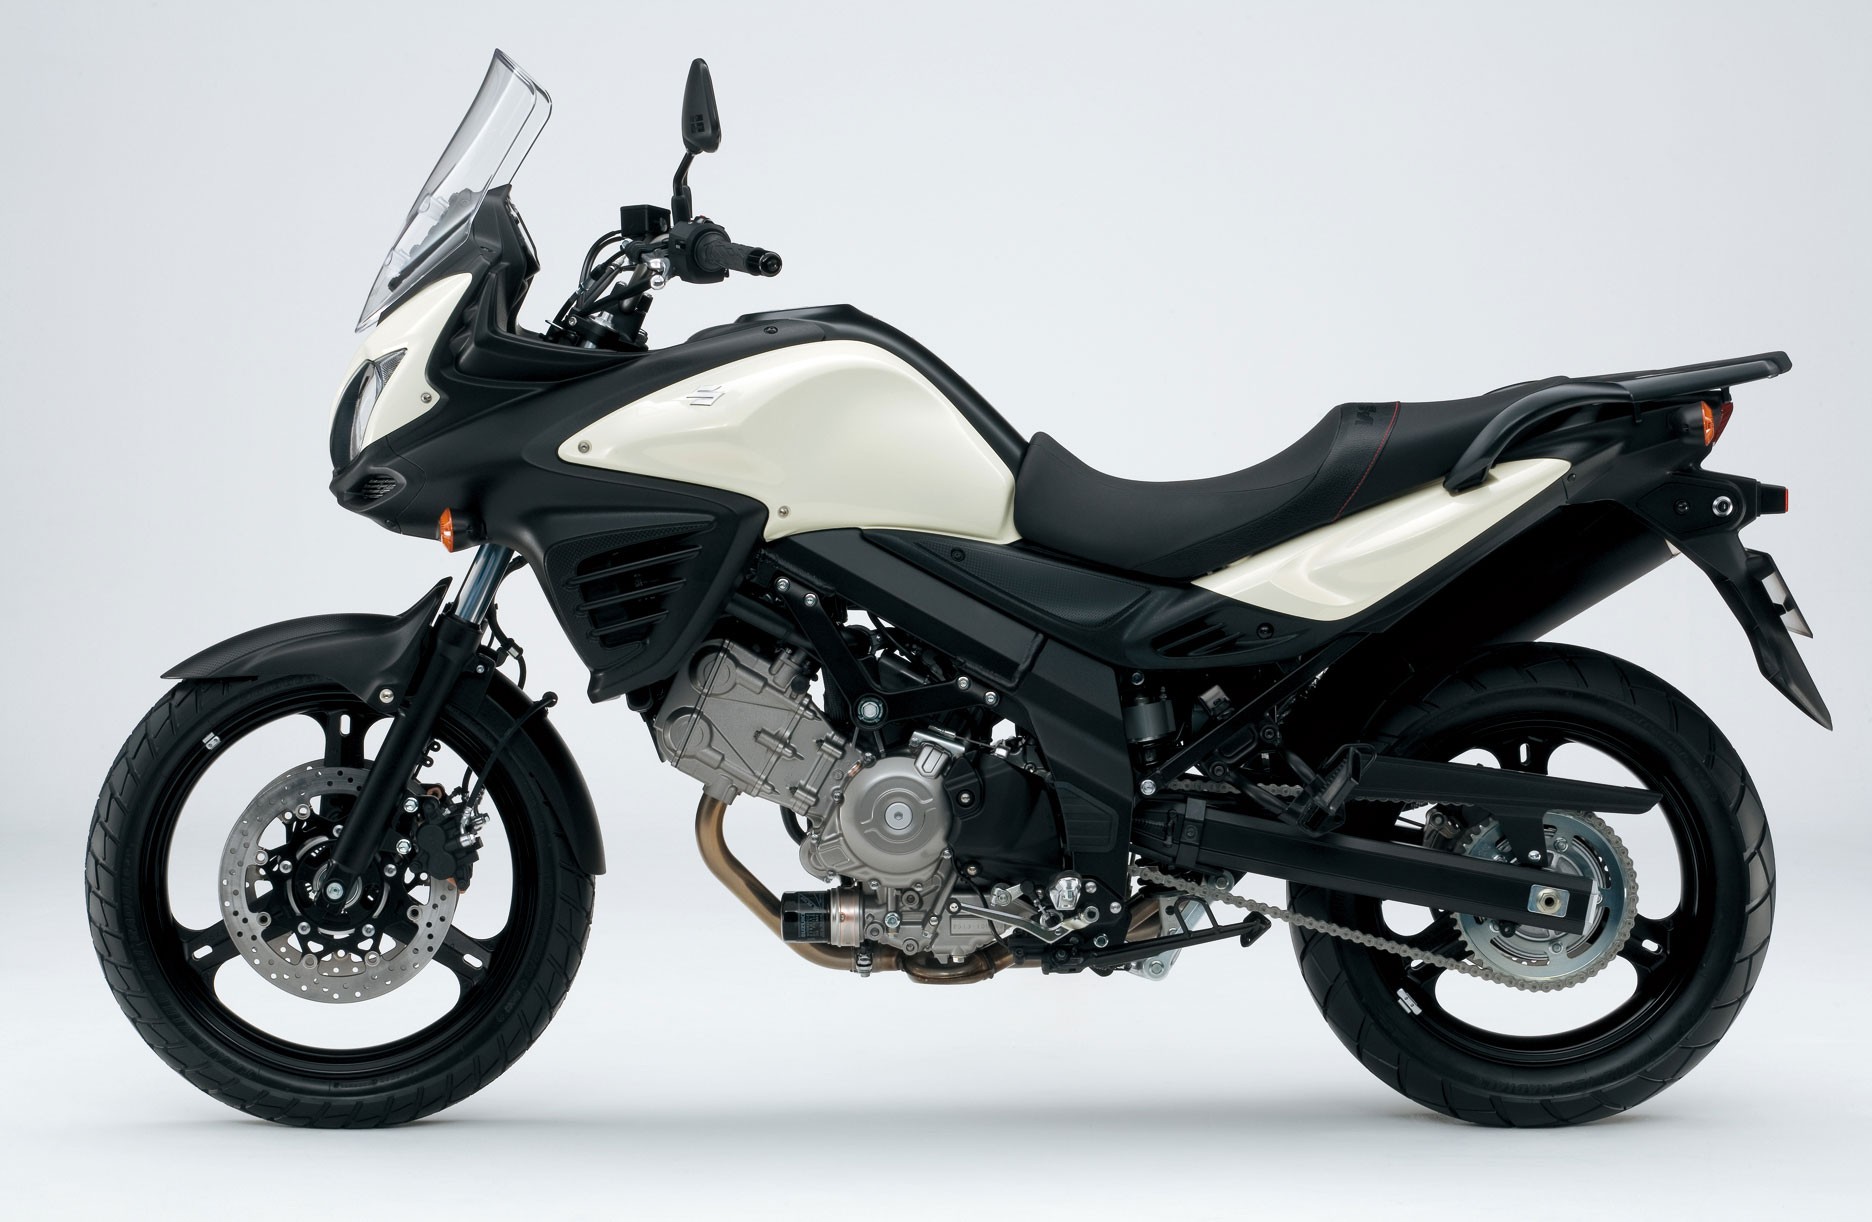 suzuki dl650a v strom 650 abs specs 2011 2012. Black Bedroom Furniture Sets. Home Design Ideas